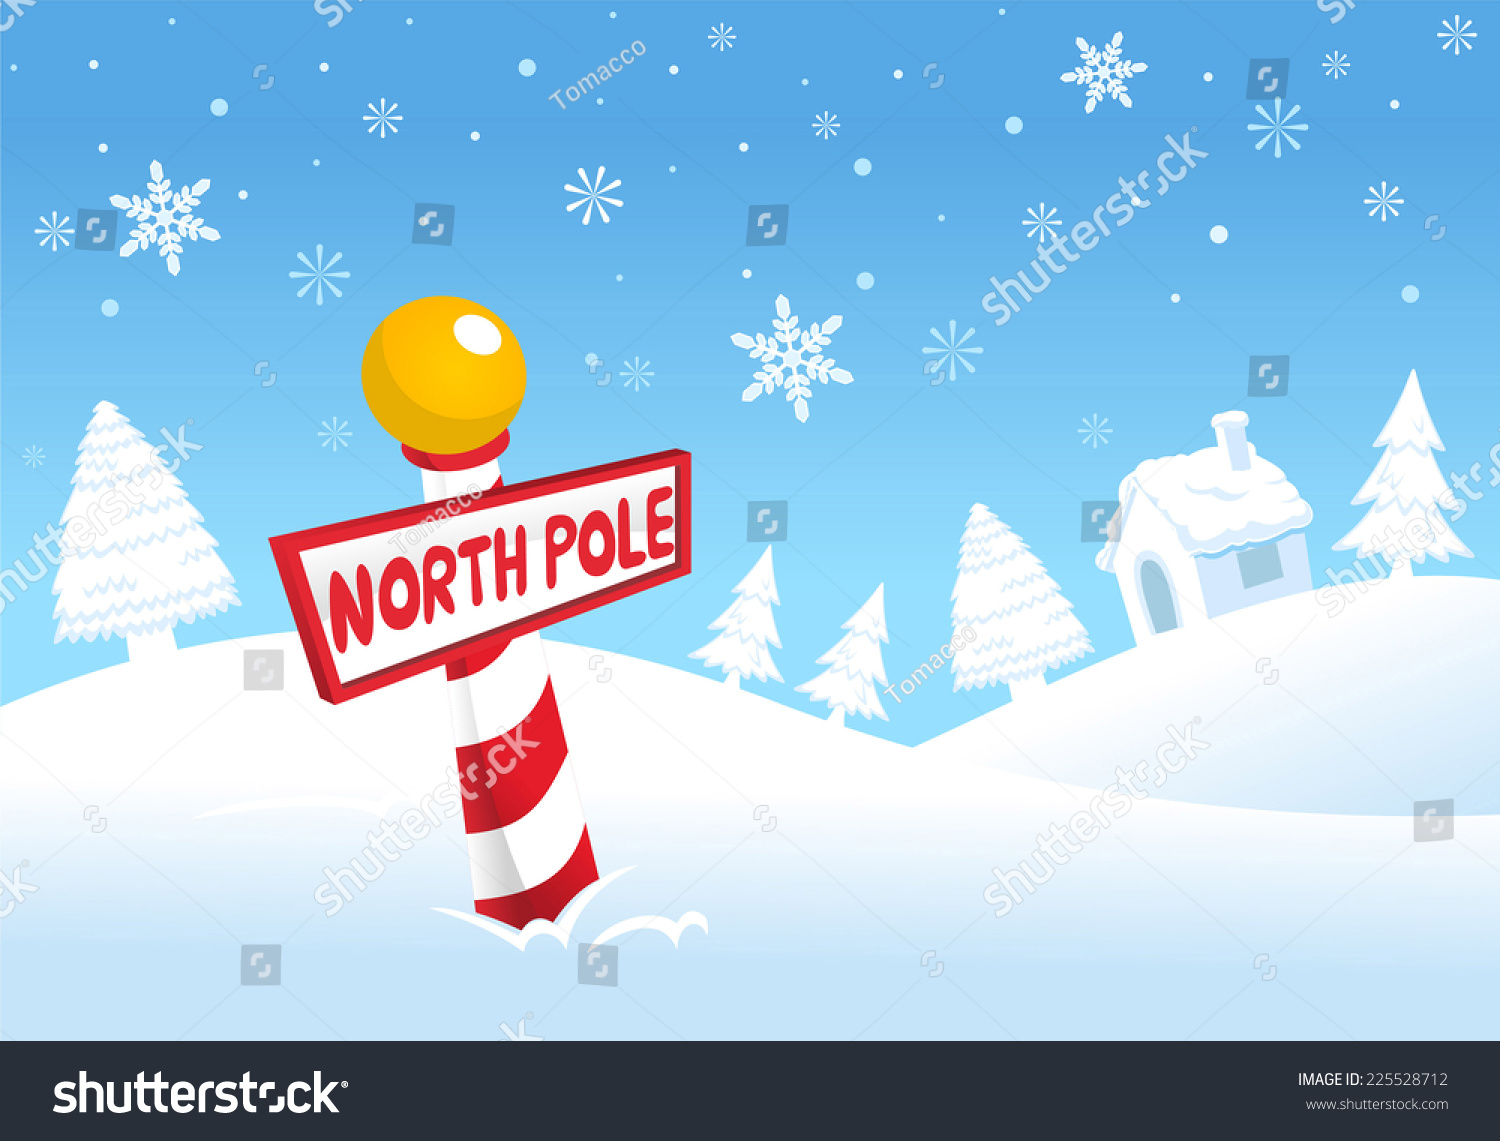 North Pole Christmas Landscape Scene Vector Stock Vector (Royalty ...